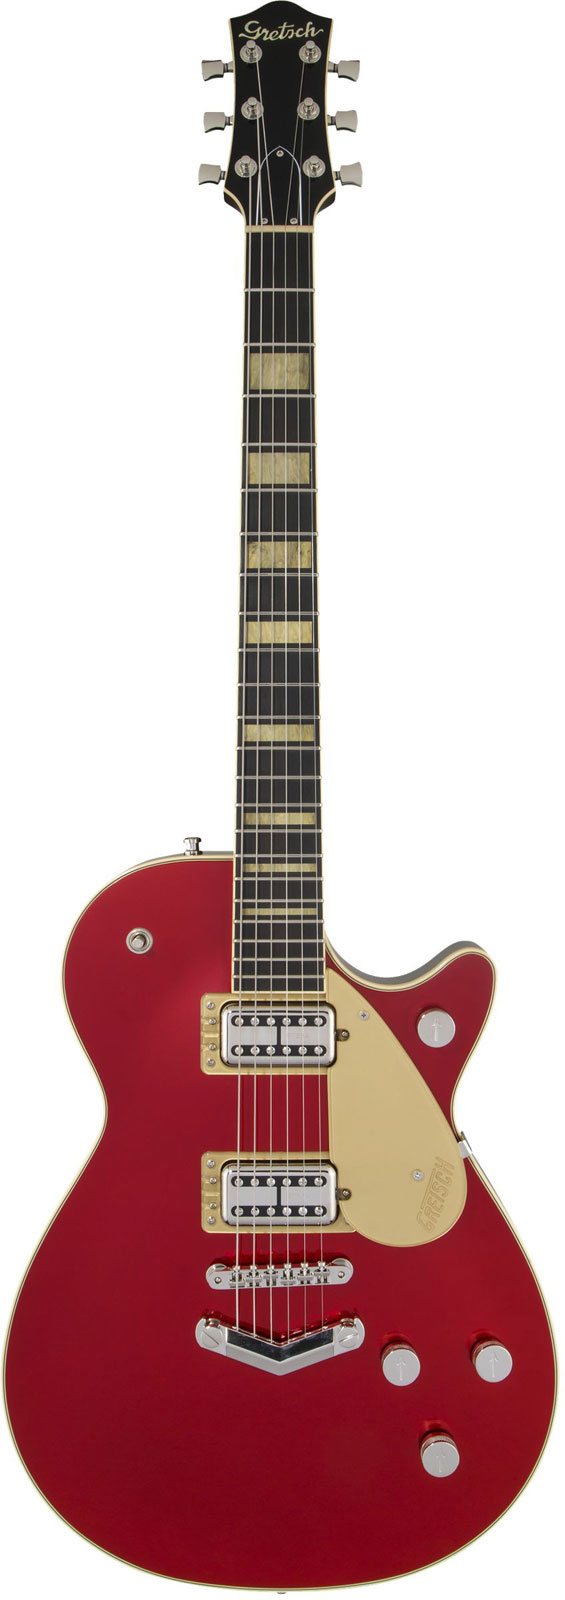 Gretsch Guitars G6228-pe-car Jet Bt Car Wc